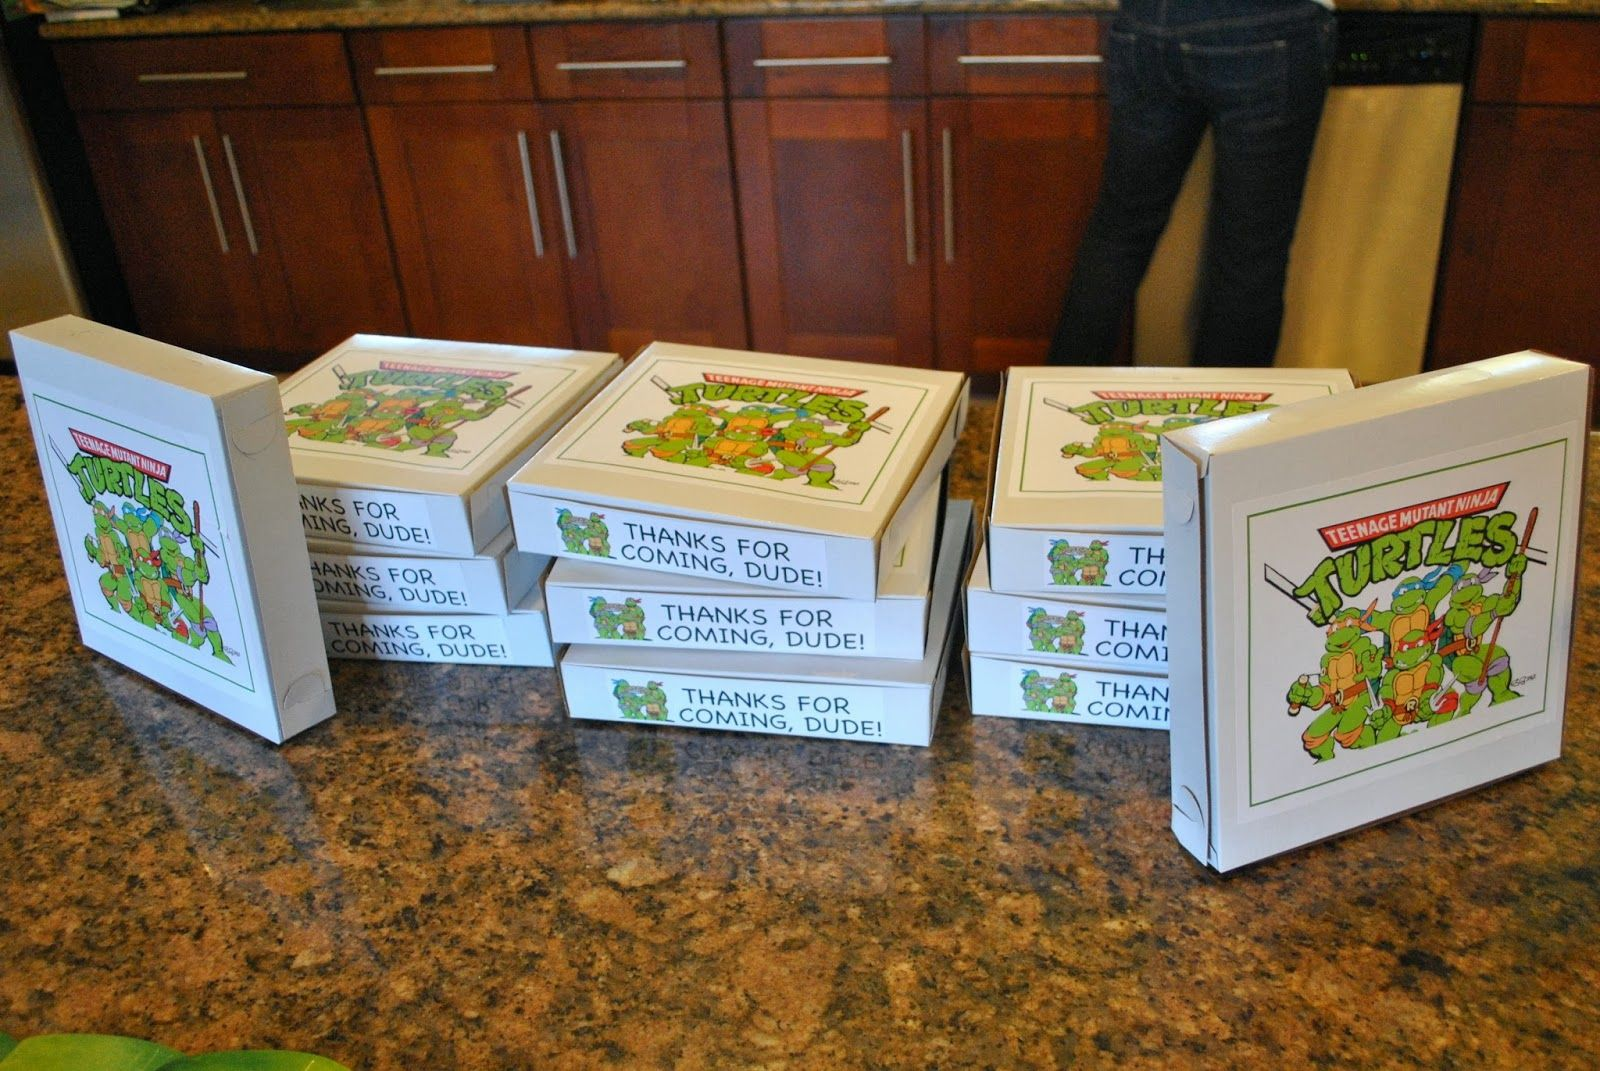 teenage mutant ninja turtles party - favor boxes | Parties ...